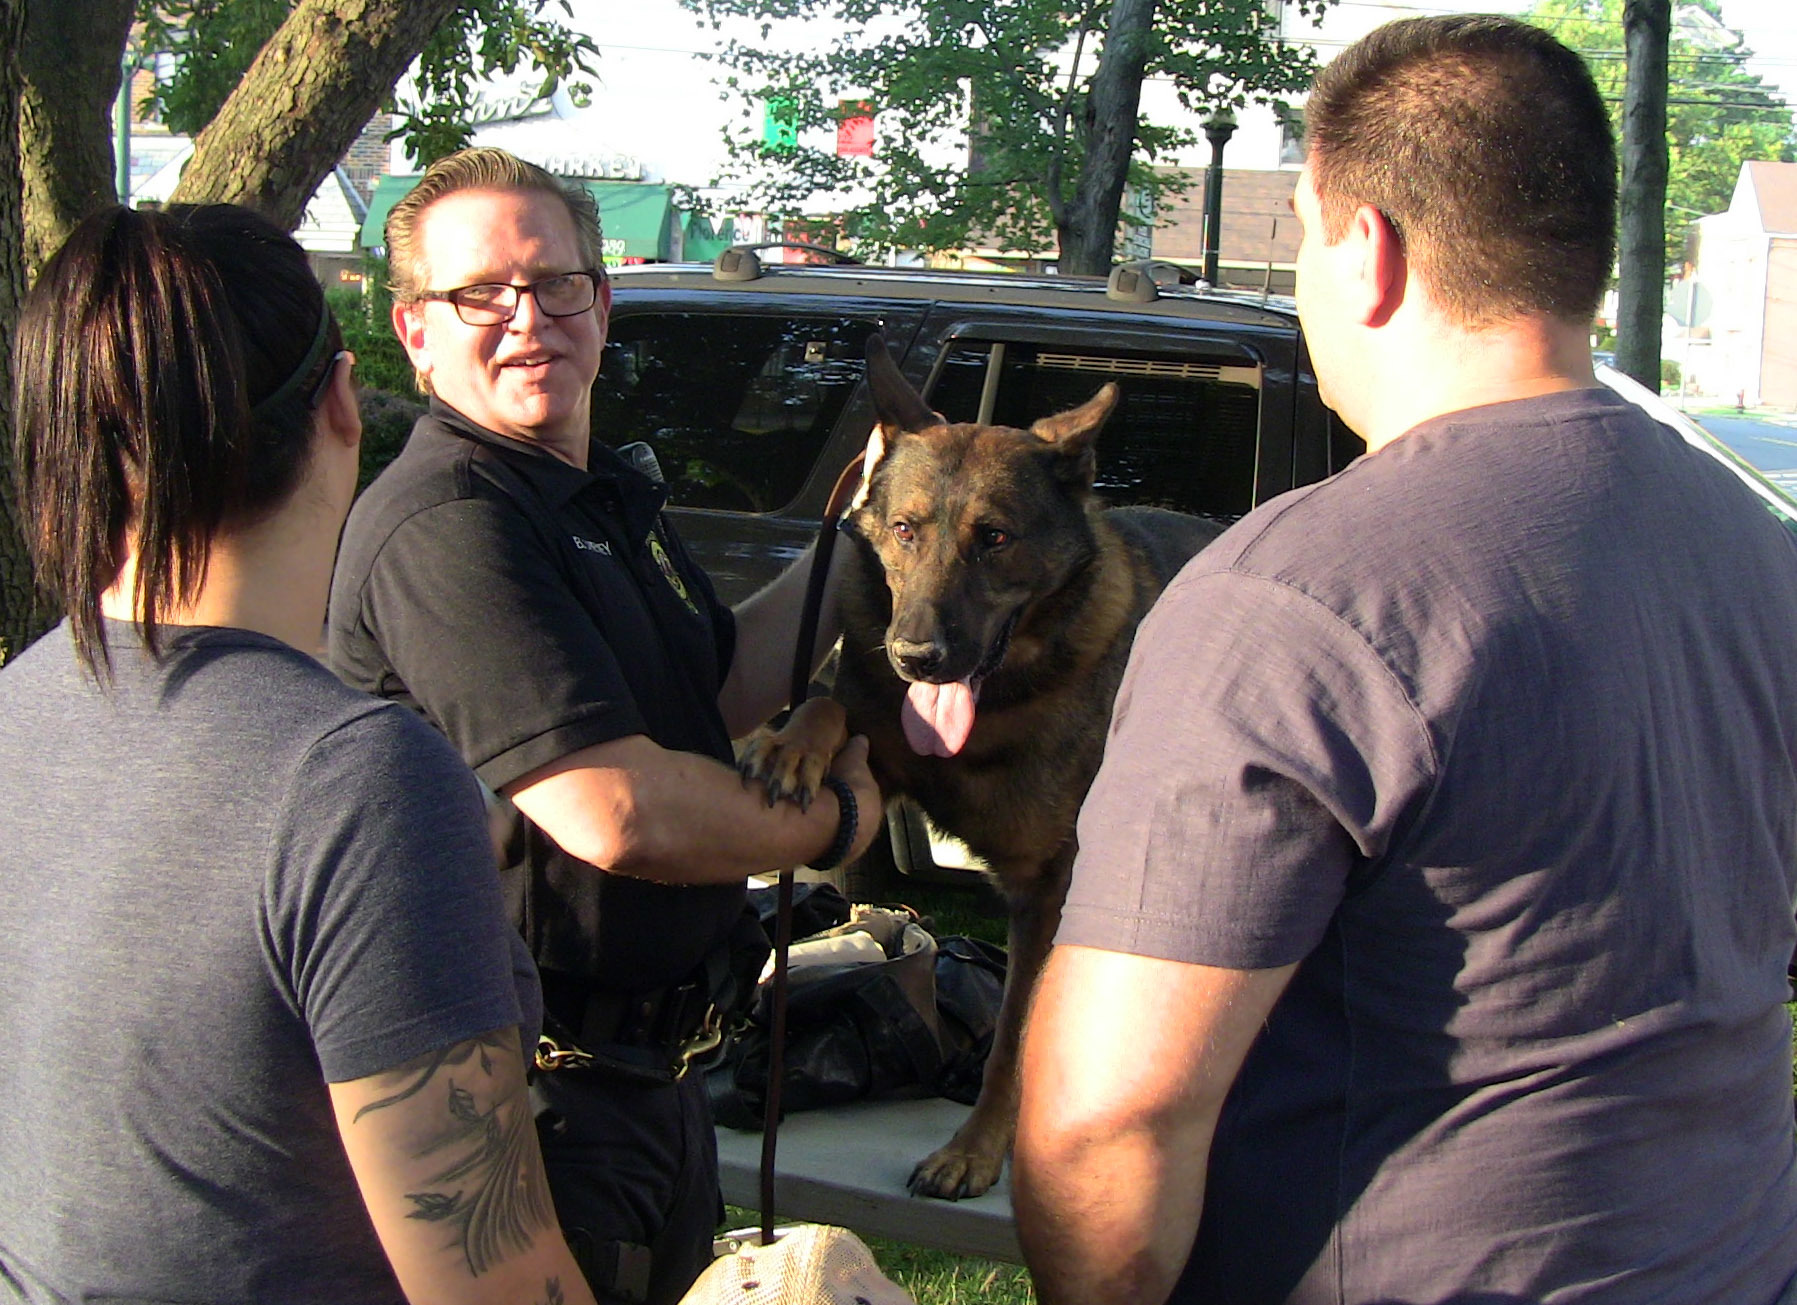 a673dcce23e2c5667c3d_Brian_Cheney_and_K-9_unit.jpg